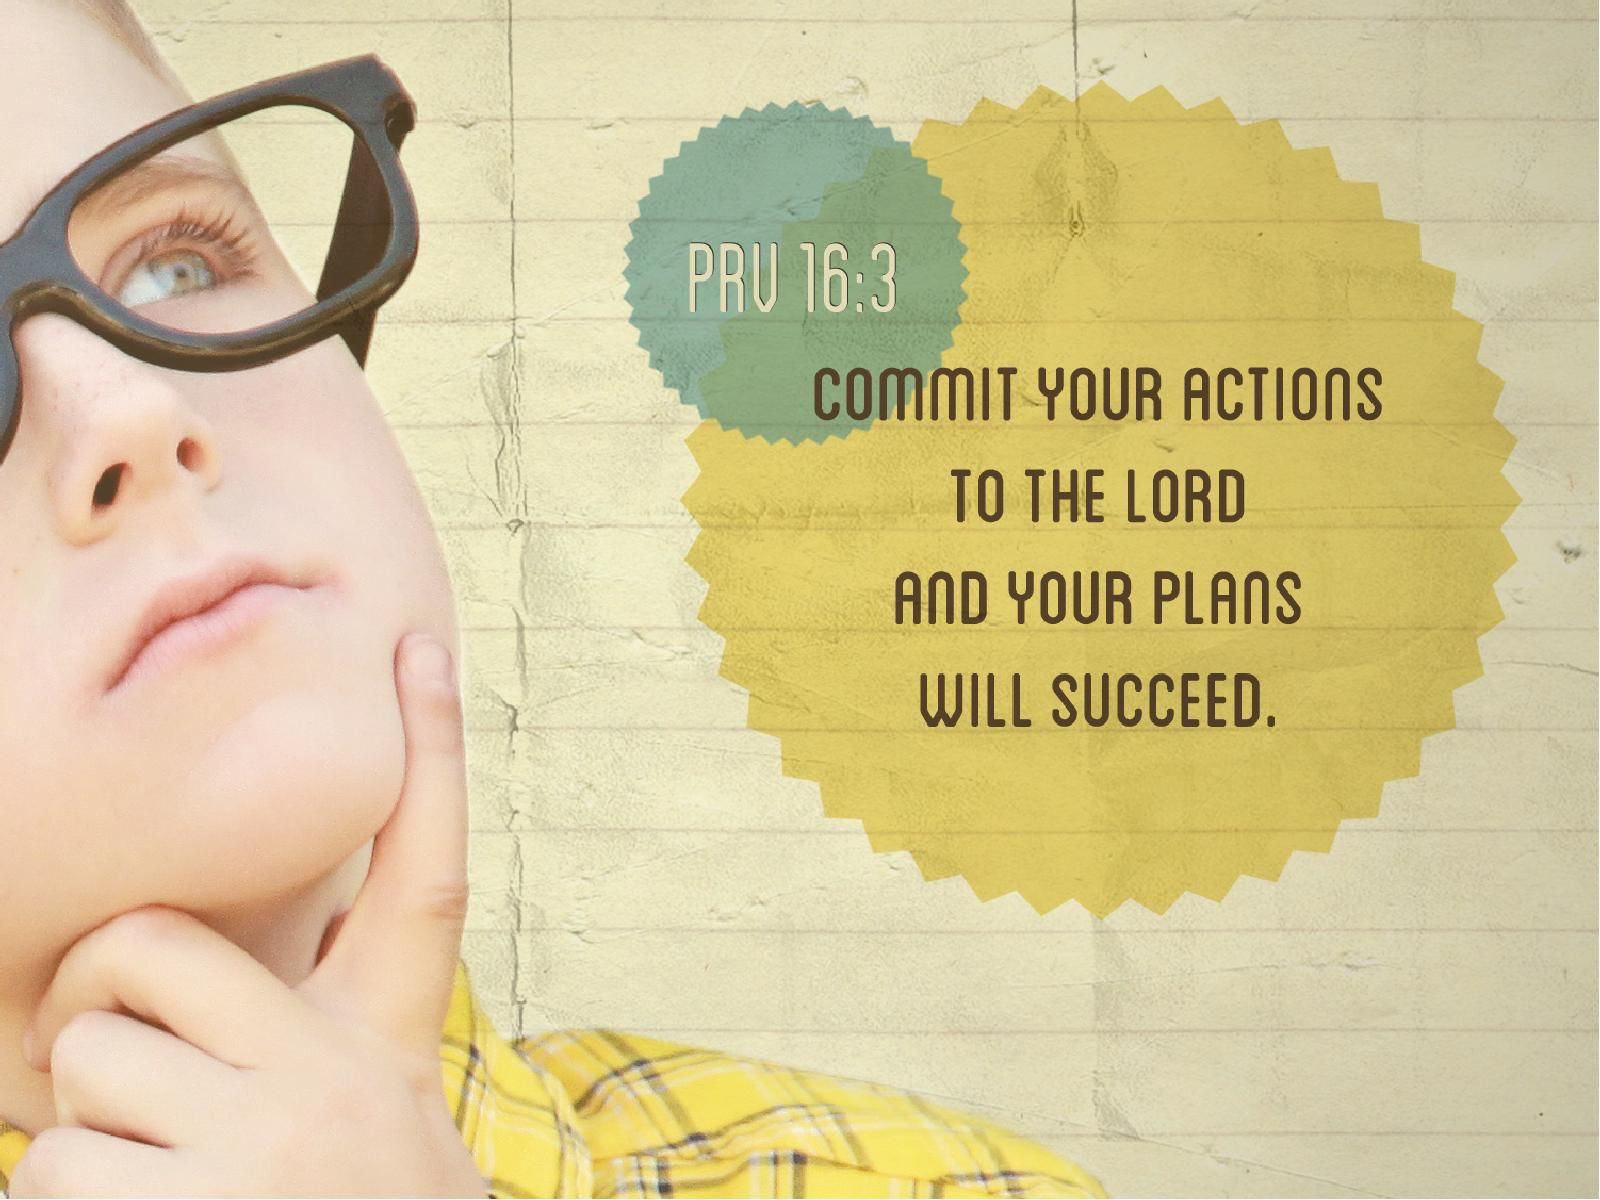 Does your child need confidence? Teach them how to set a small, measurable goal, then encourage them along the way.